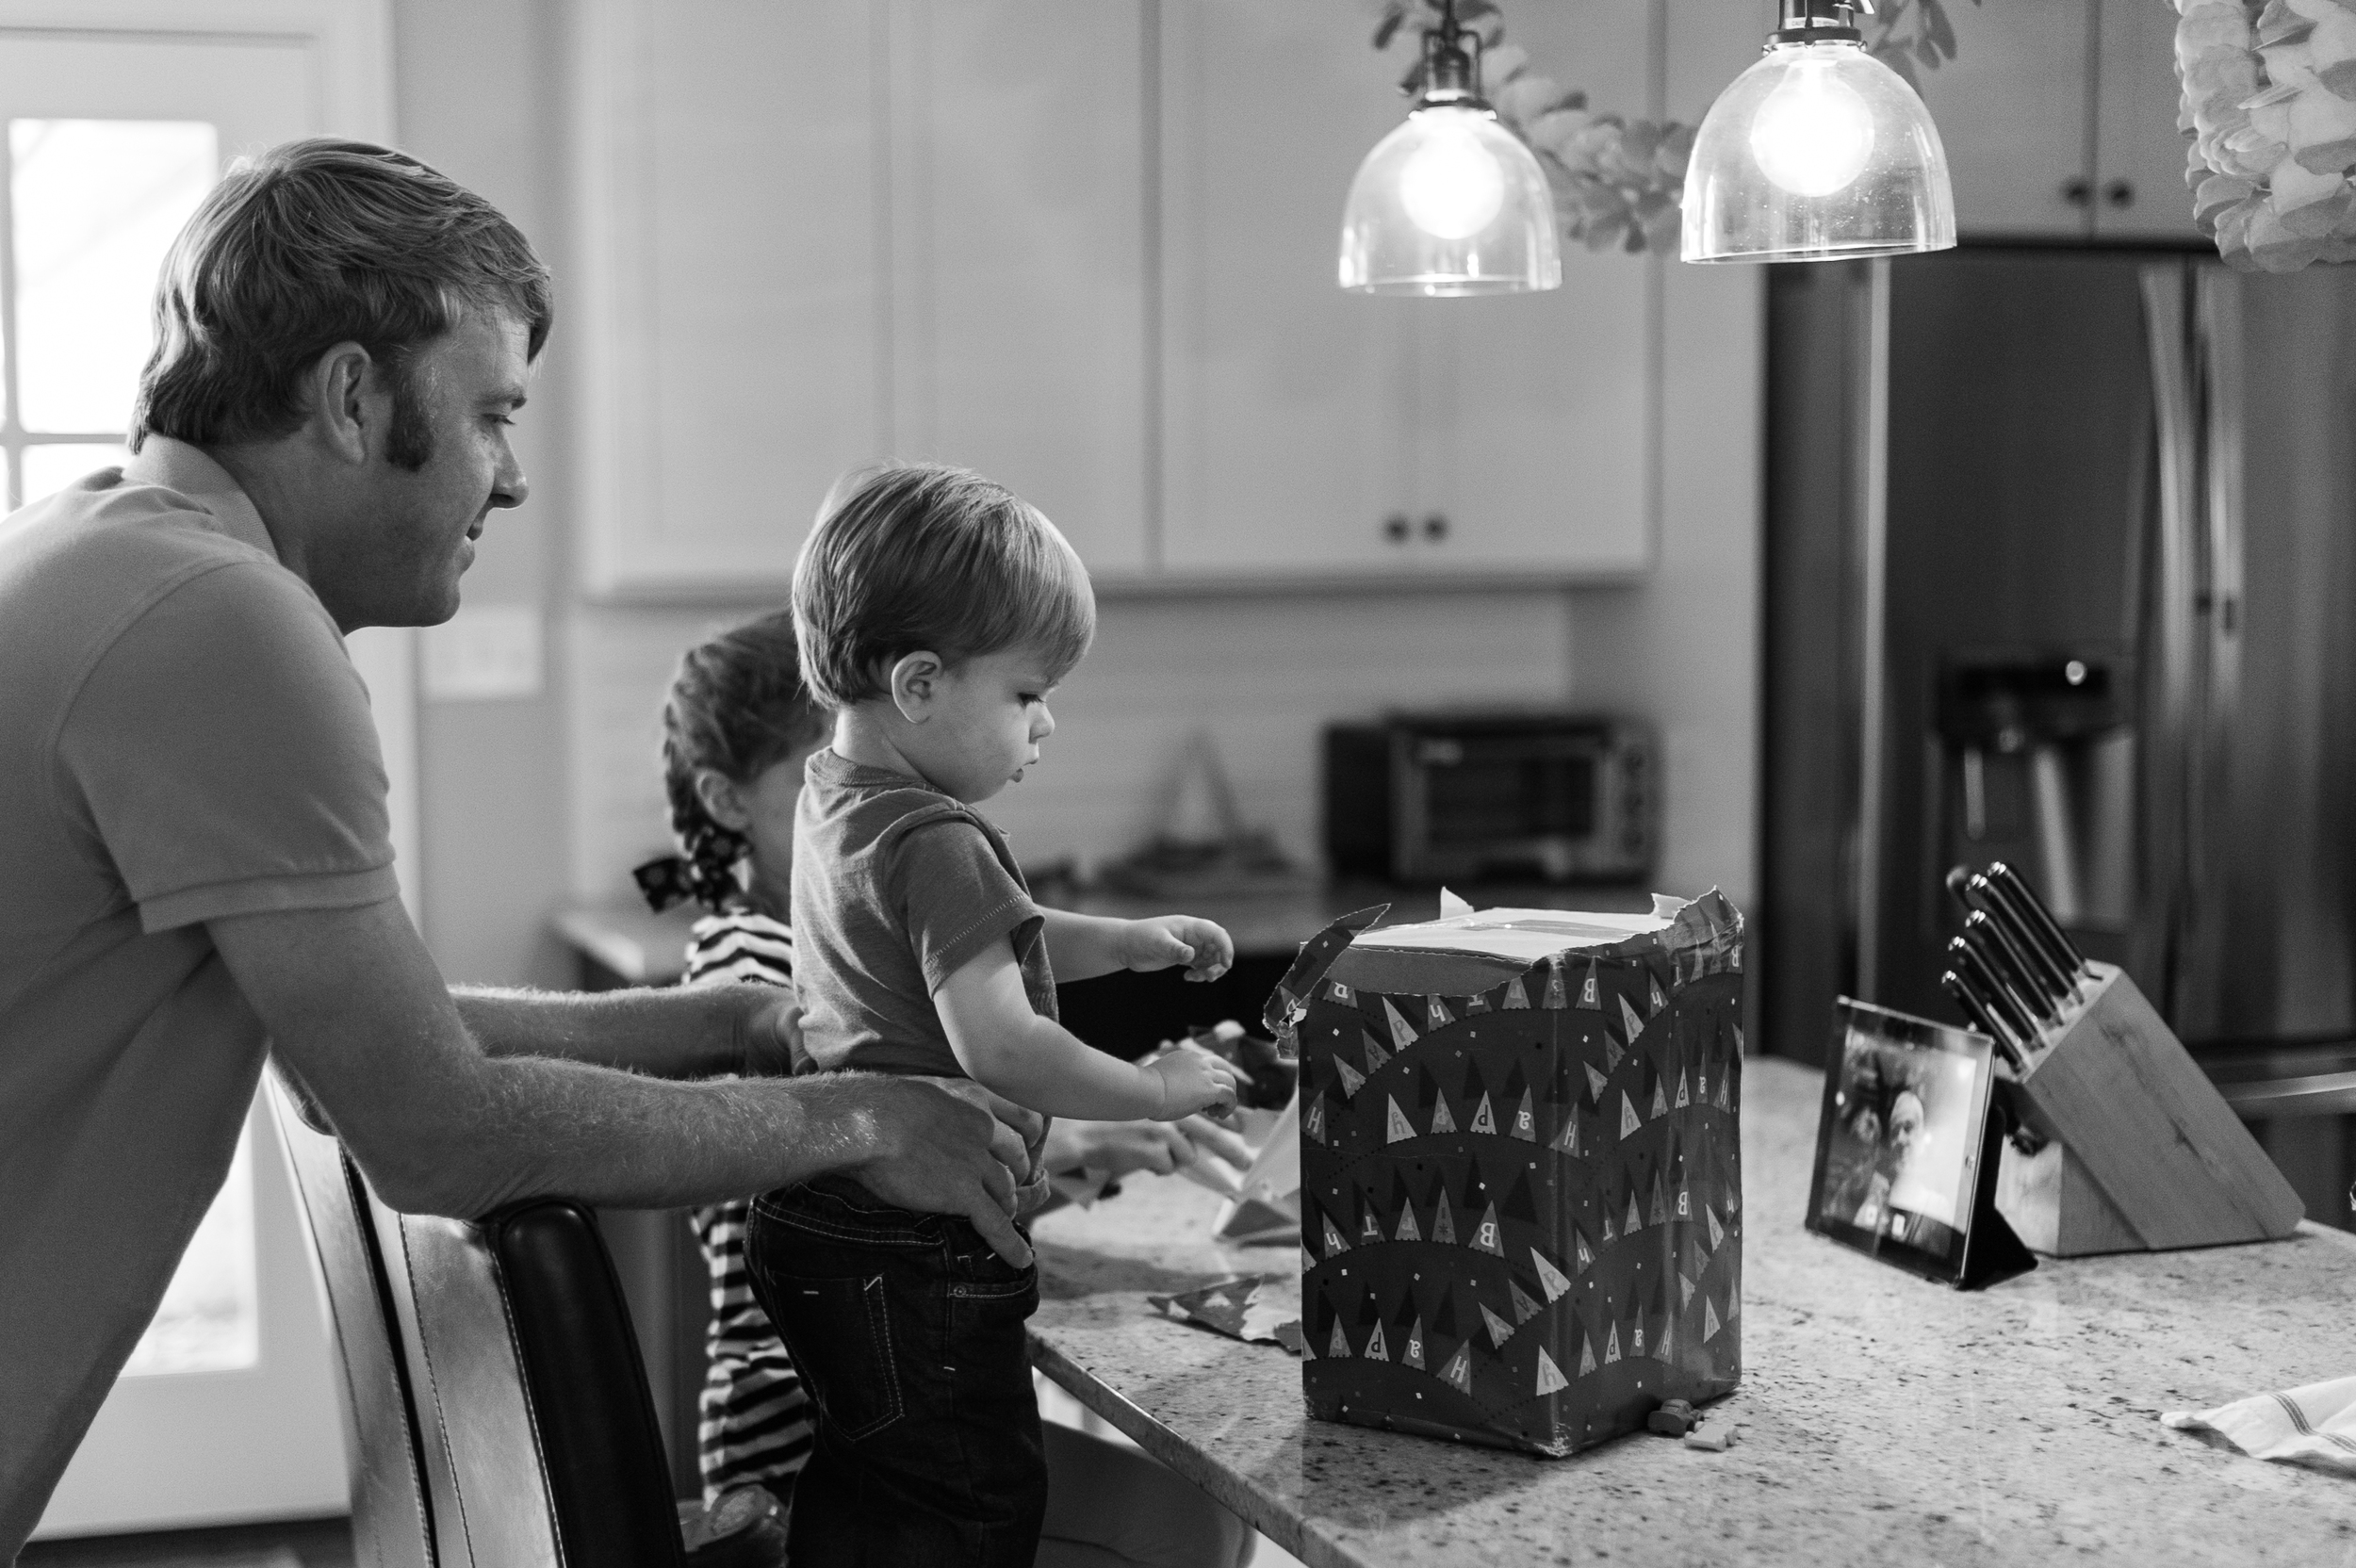 The morning started out with a Face Time session with Poppa and Gigi. Henry's biggest problem was fending off his big siblings so he could have some time to play with his new toys.